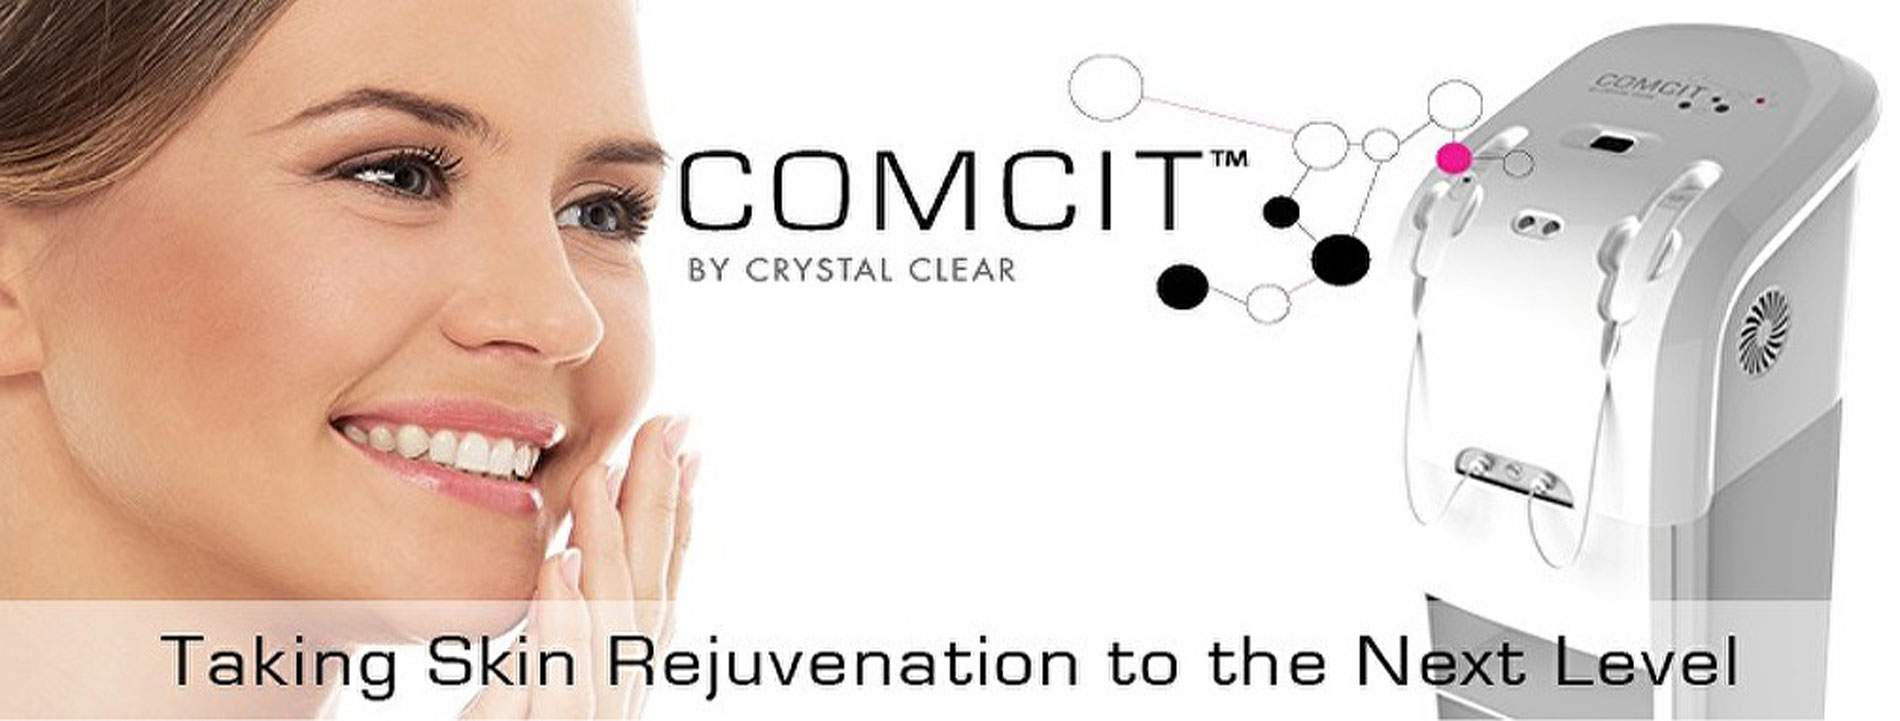 Comcit by Crystal Clear